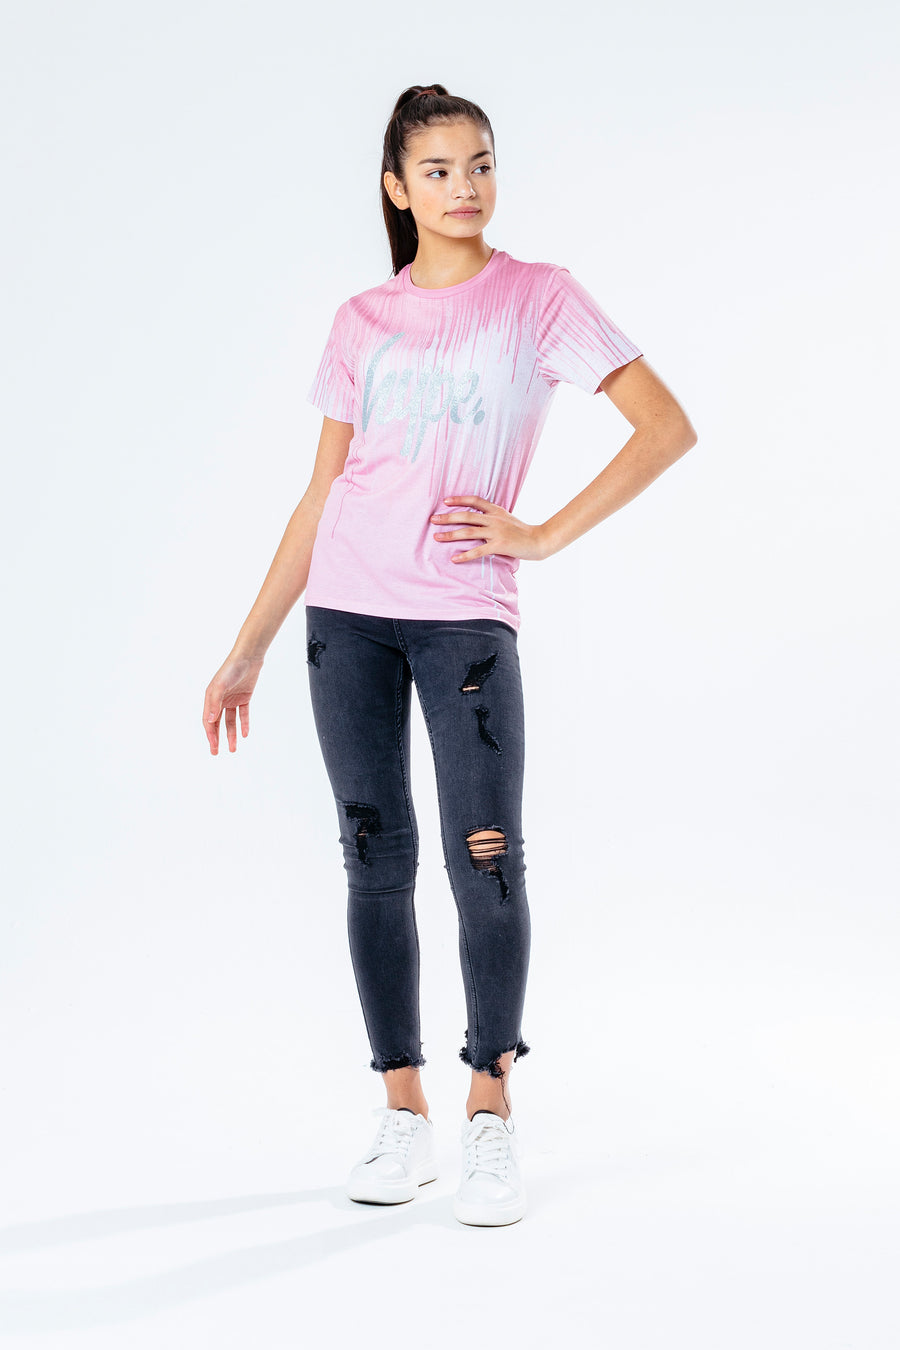 HYPE PINK DRIPS T-SHIRT KIDS